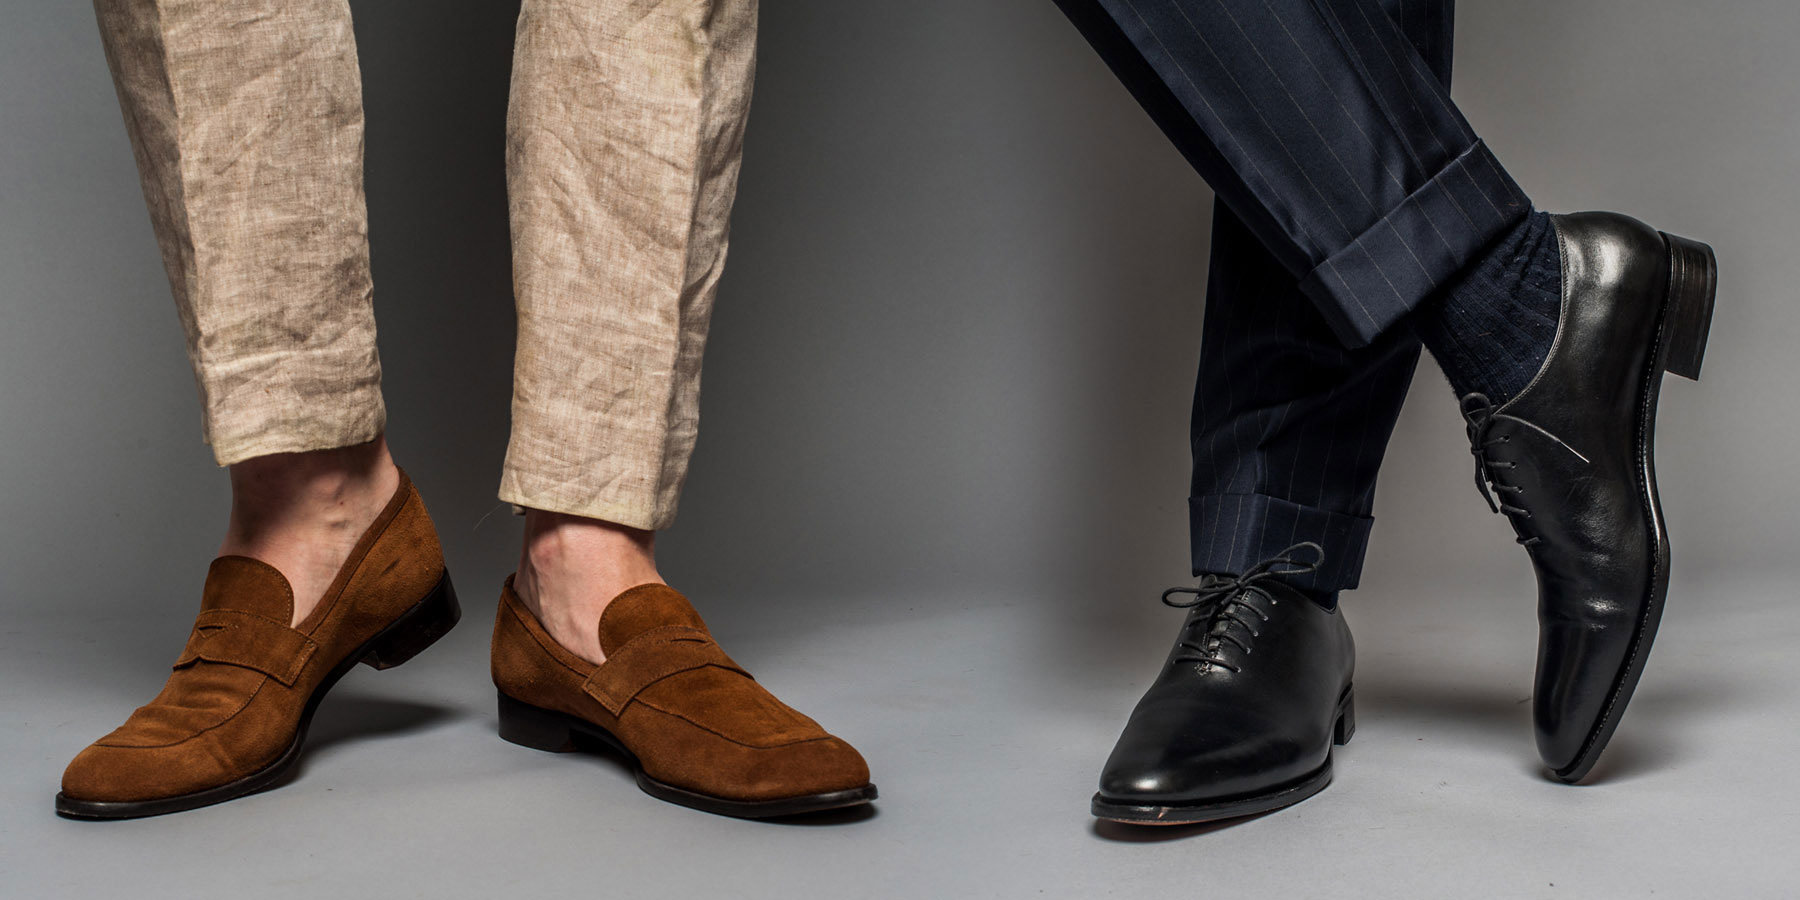 Wear if You Have Narrow Feet